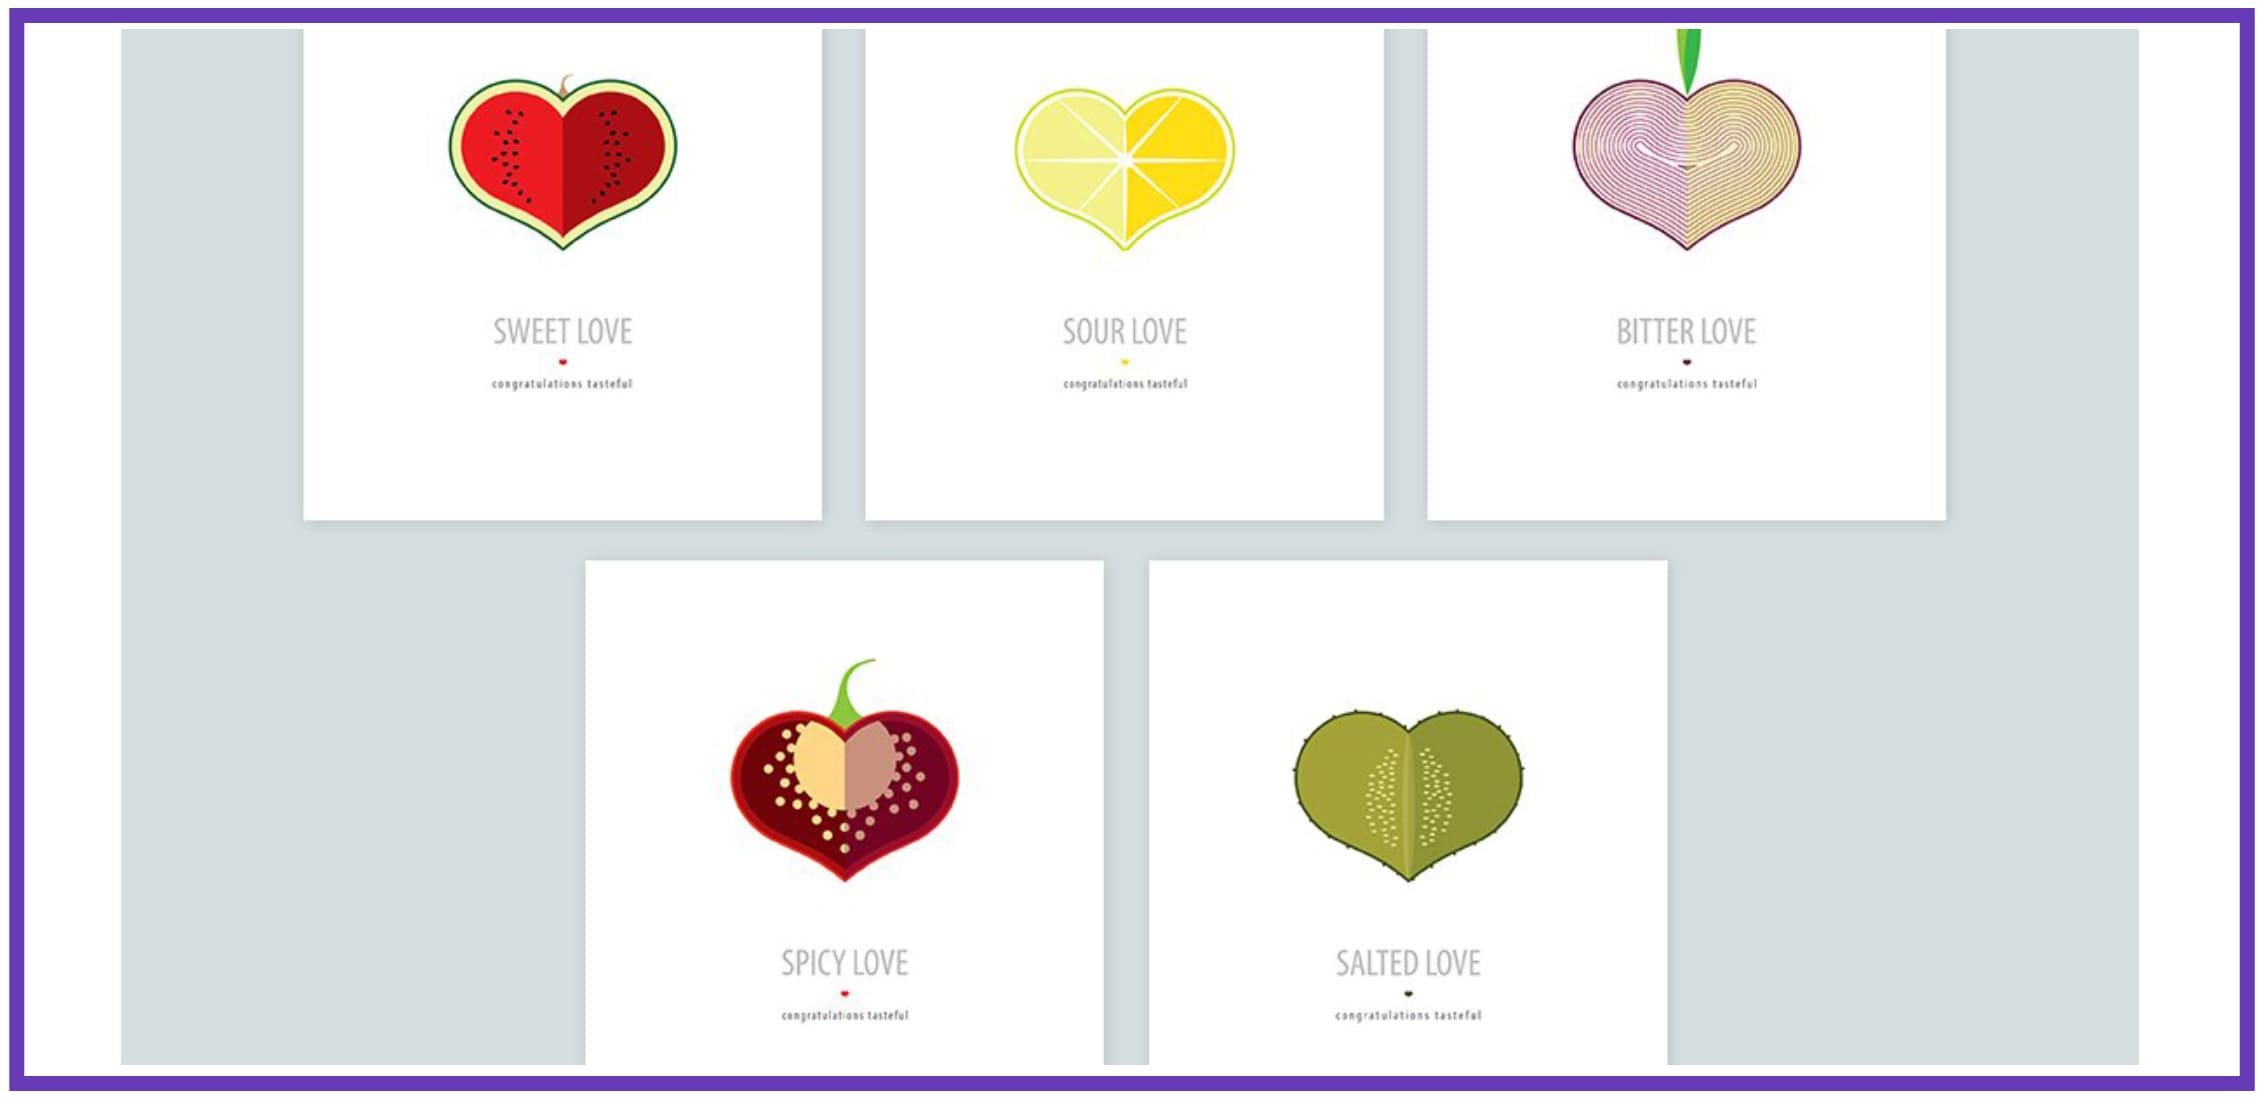 70+ Valentine's Day Cards 2021. Do not Forget about a Heartfelt Card for Your Valentine - valentines day card 19